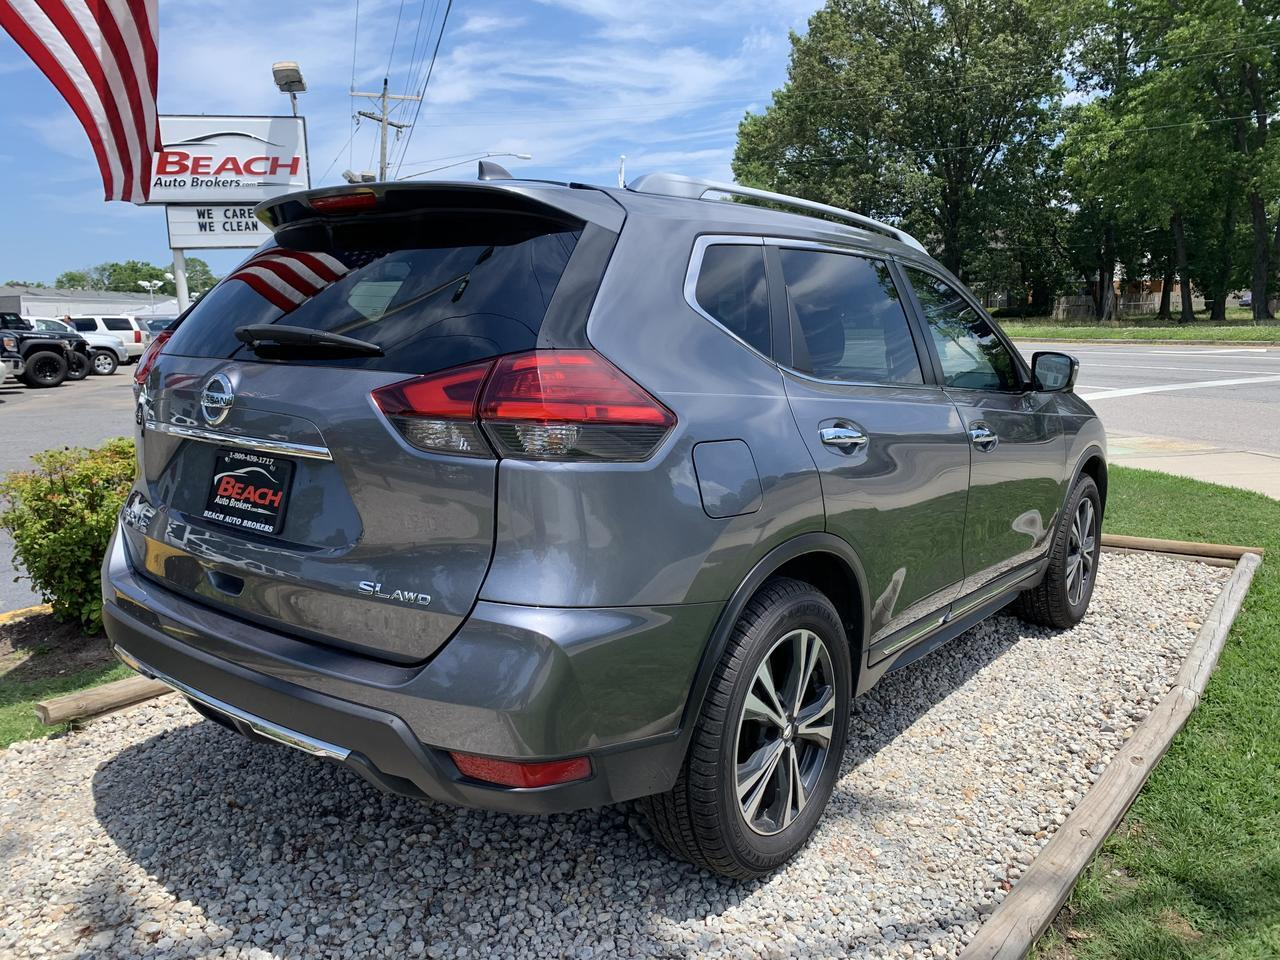 2017 NISSAN ROGUE SL, WARRANTY, LEATHER, NAV, HEATED FRONT SEATS, BLUETOOTH, BACKUP CAM, 1 OWNER! Norfolk VA